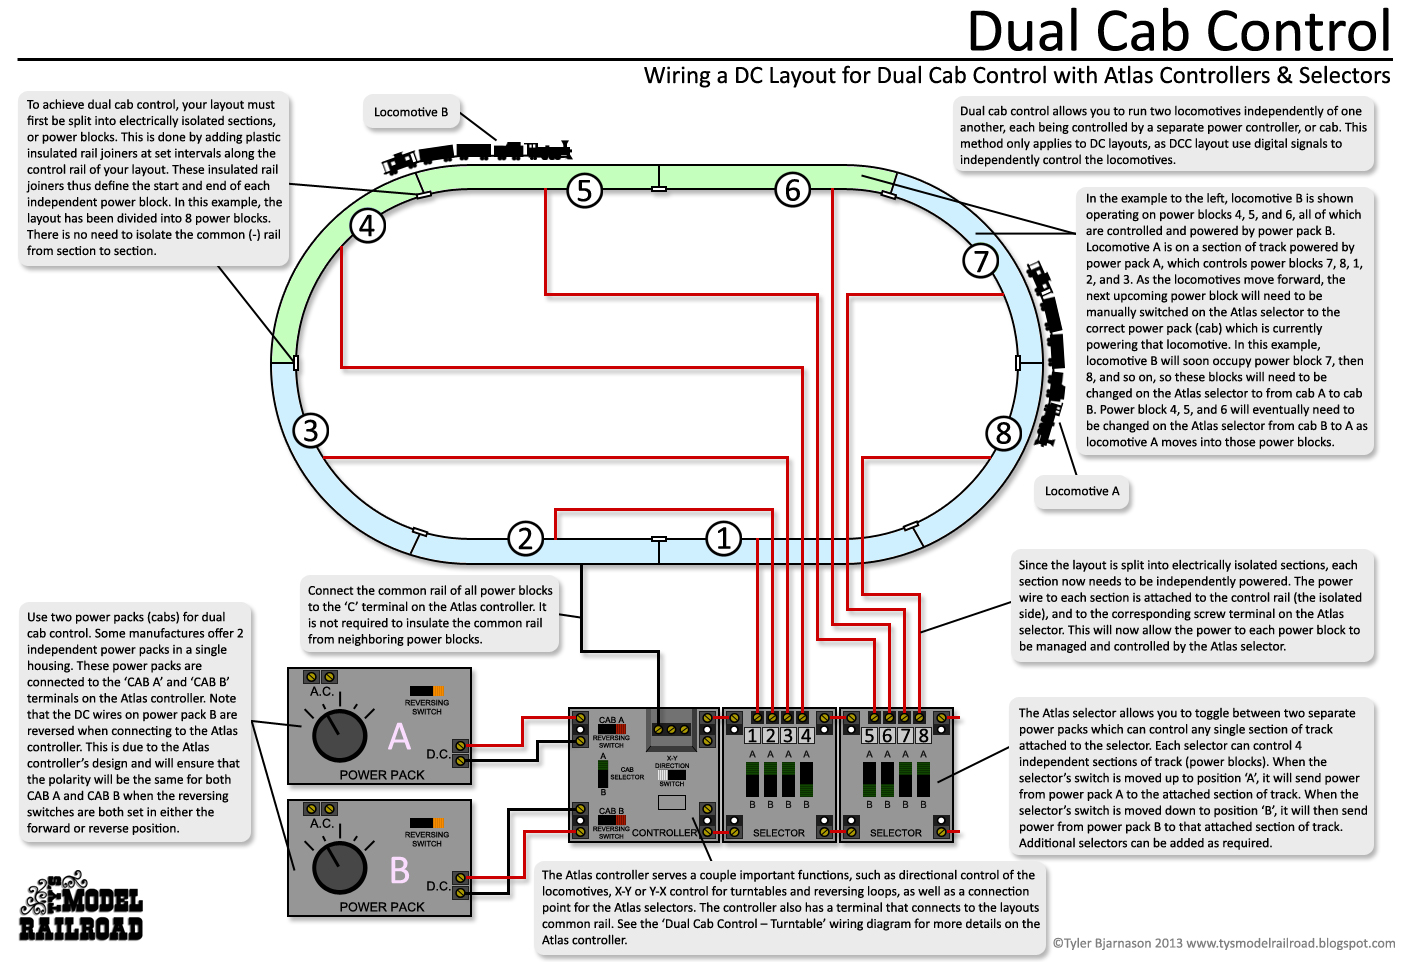 Tys Model Railroad Wiring Diagrams 2011 F350 Brake Controller Diagram How To Wire A Layout For Dual Cab Control Using An Atlas And Selectors